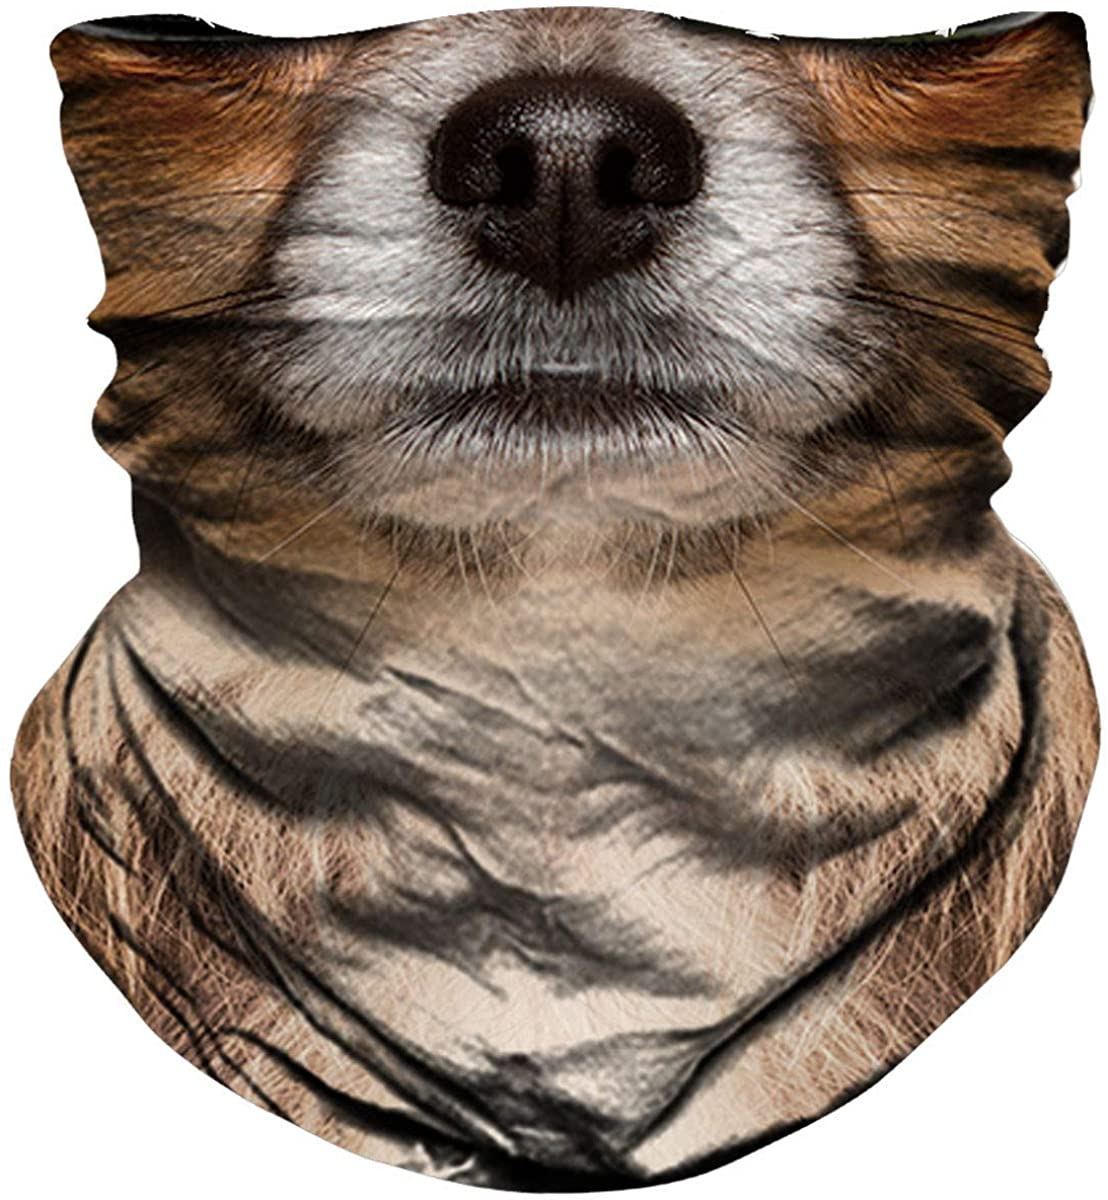 NTBOKW Neck Gaiter Animal Face Mask Bandana for Sun Dust Wind Protection Mask for Motorcycle Riding Fishing Hunting Festival Outdoor 3D Seamless Mask for Men Women